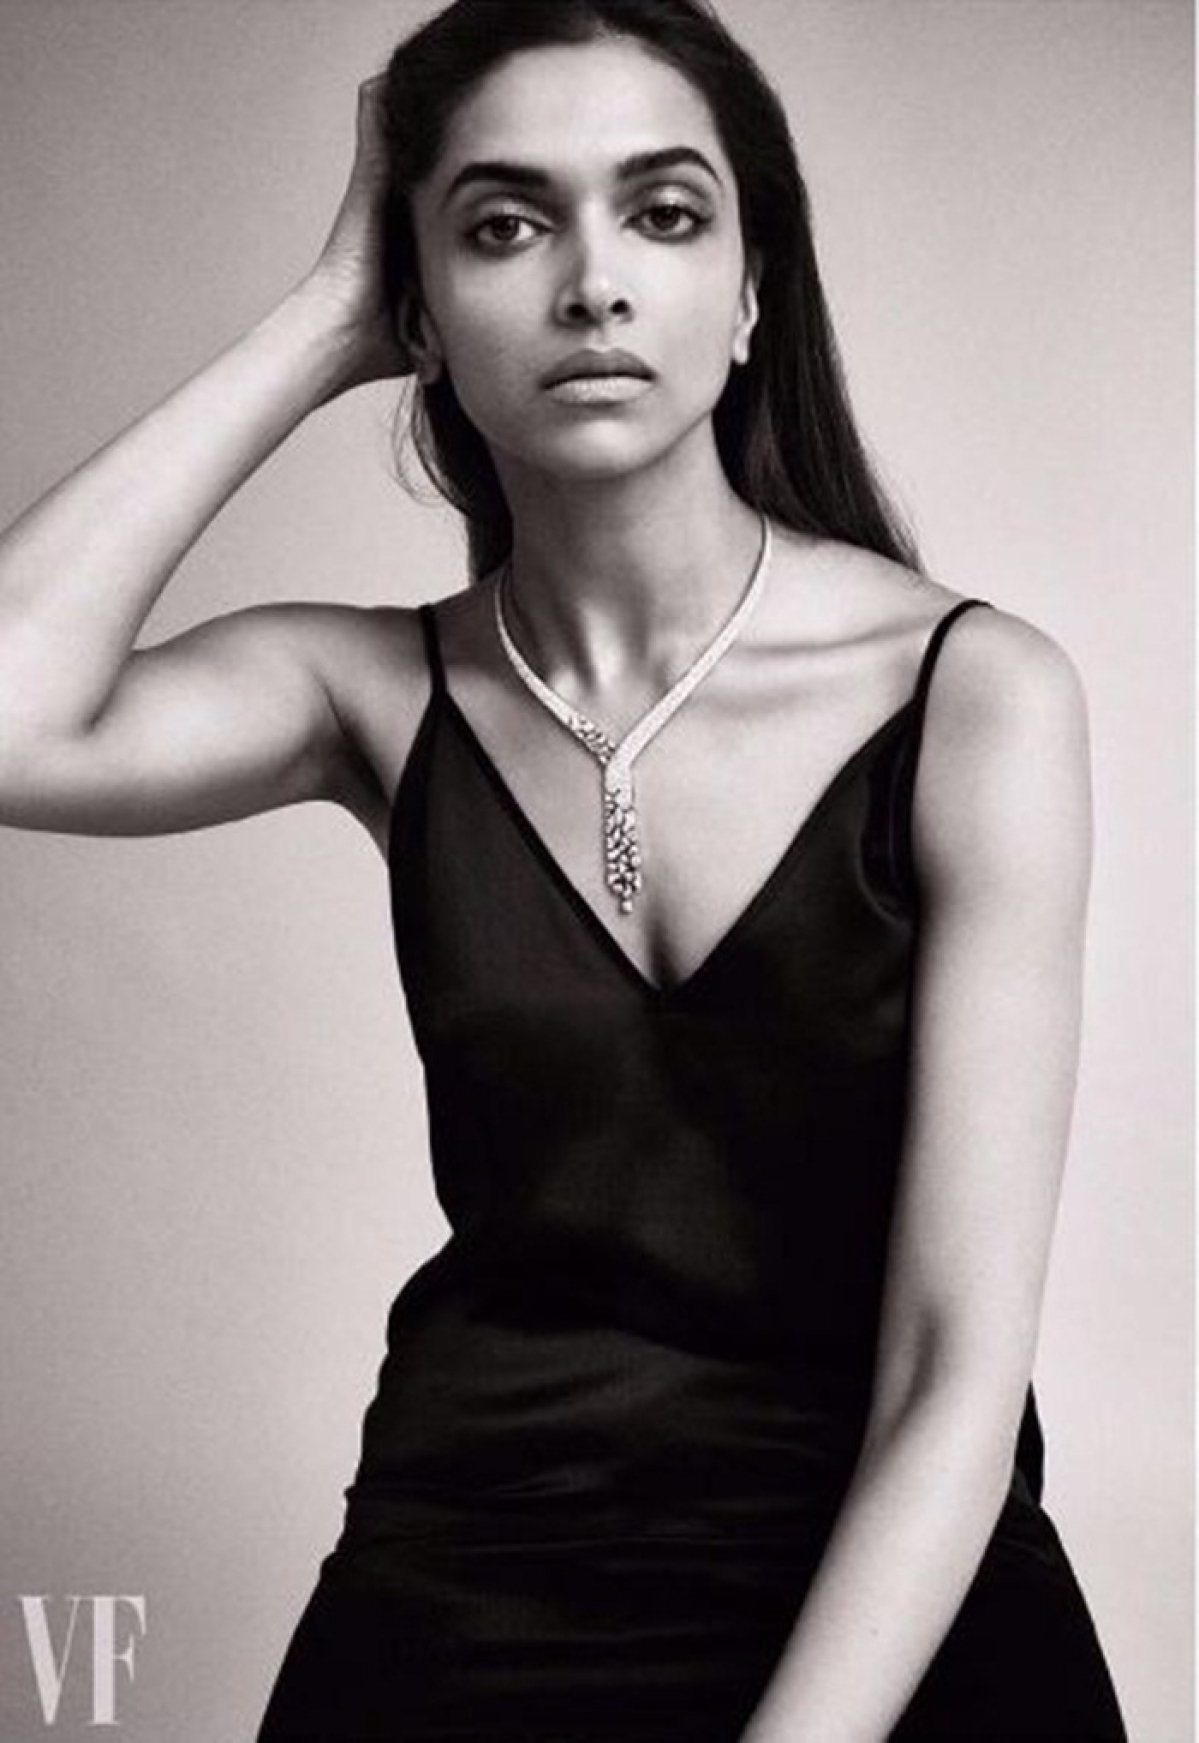 Check out: Deepika Padukone is a sexy siren in this photoshoot for Vanity Fair